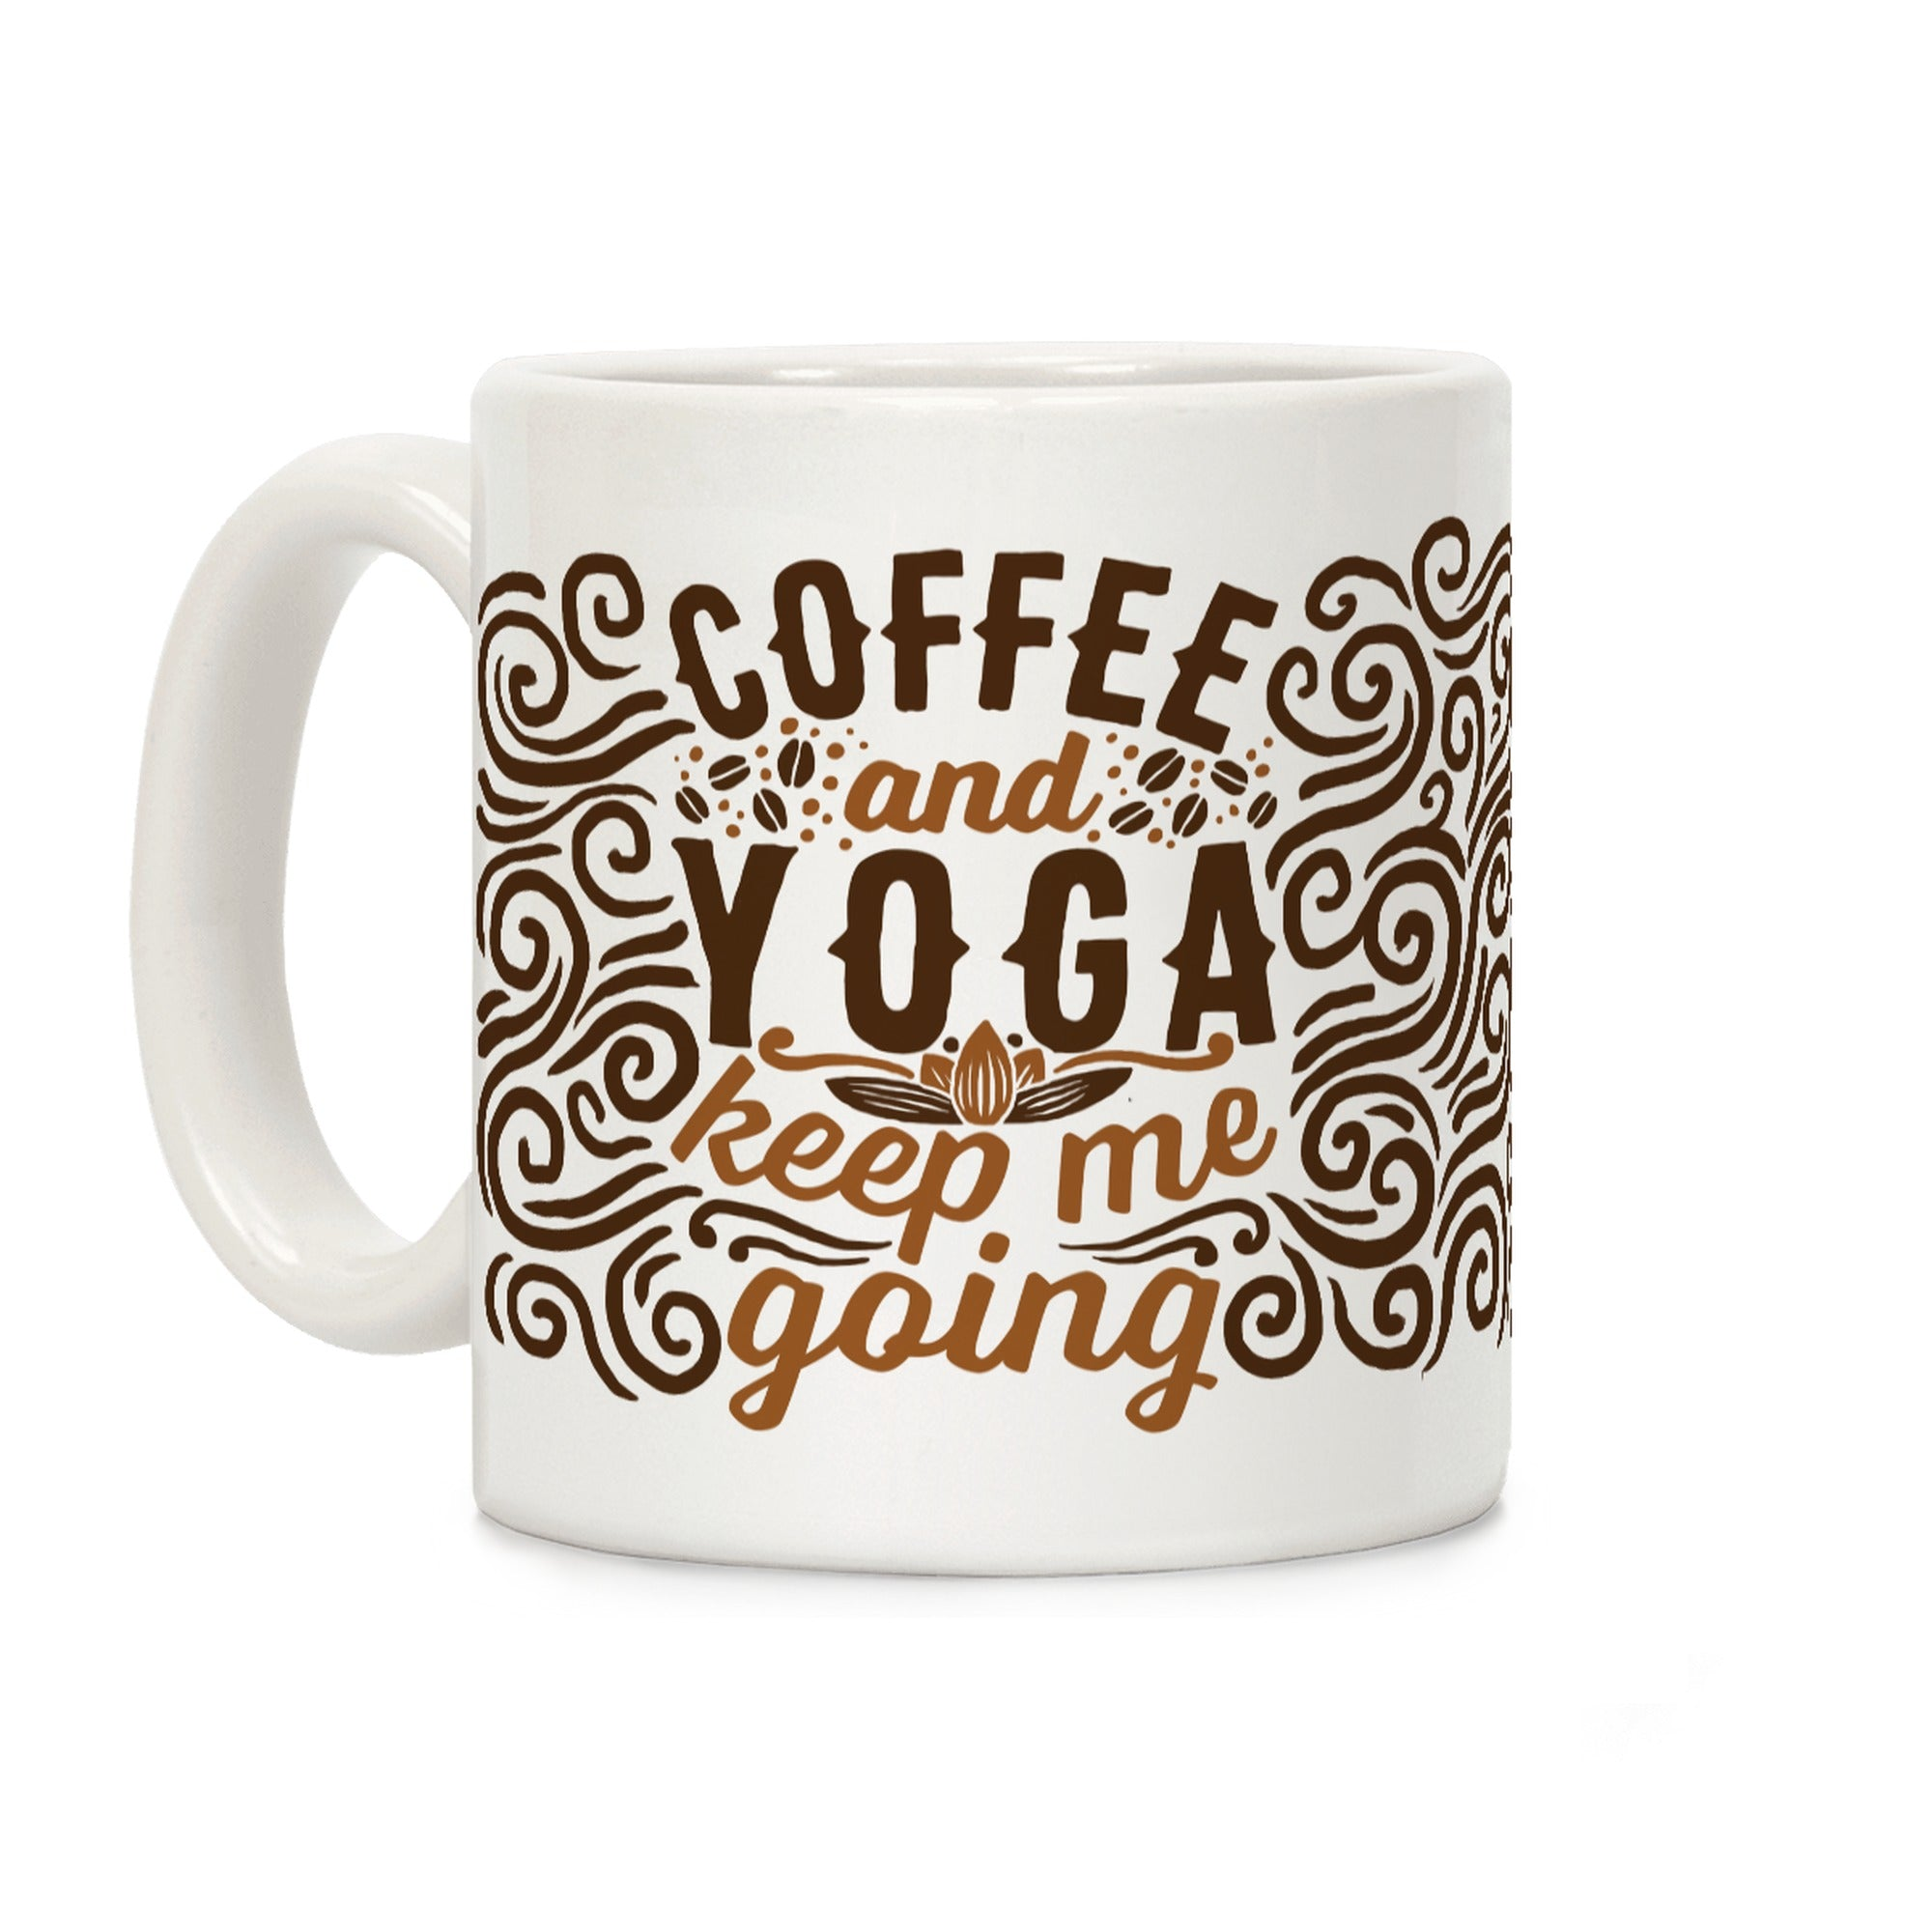 Coffee And Yoga Keep Me Going Ceramic Coffee Mug